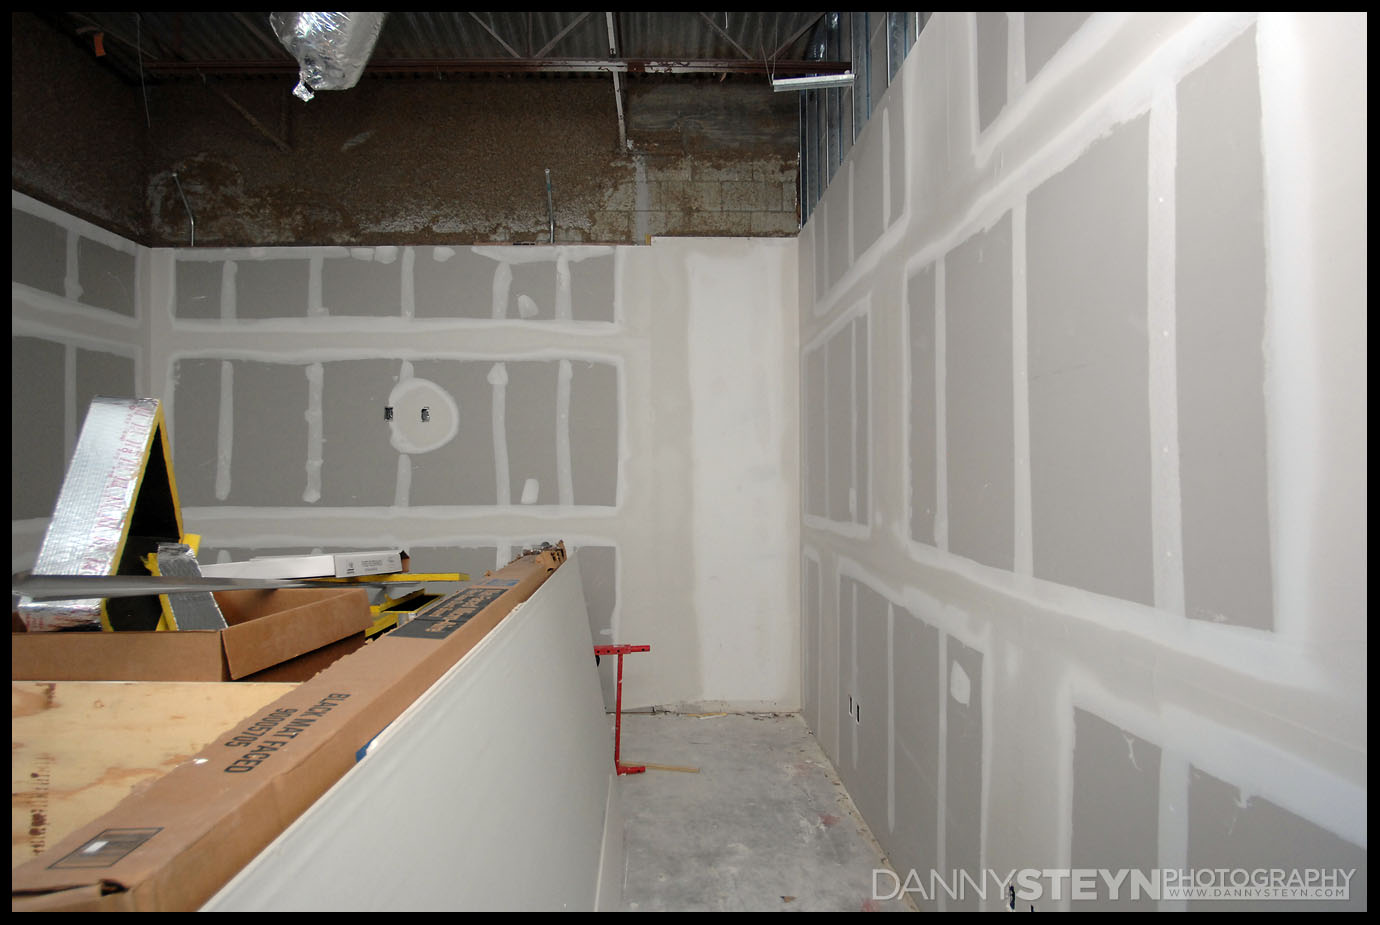 Danny Steyn Photography Studio - Drywall framing, taping and mudding - editing office